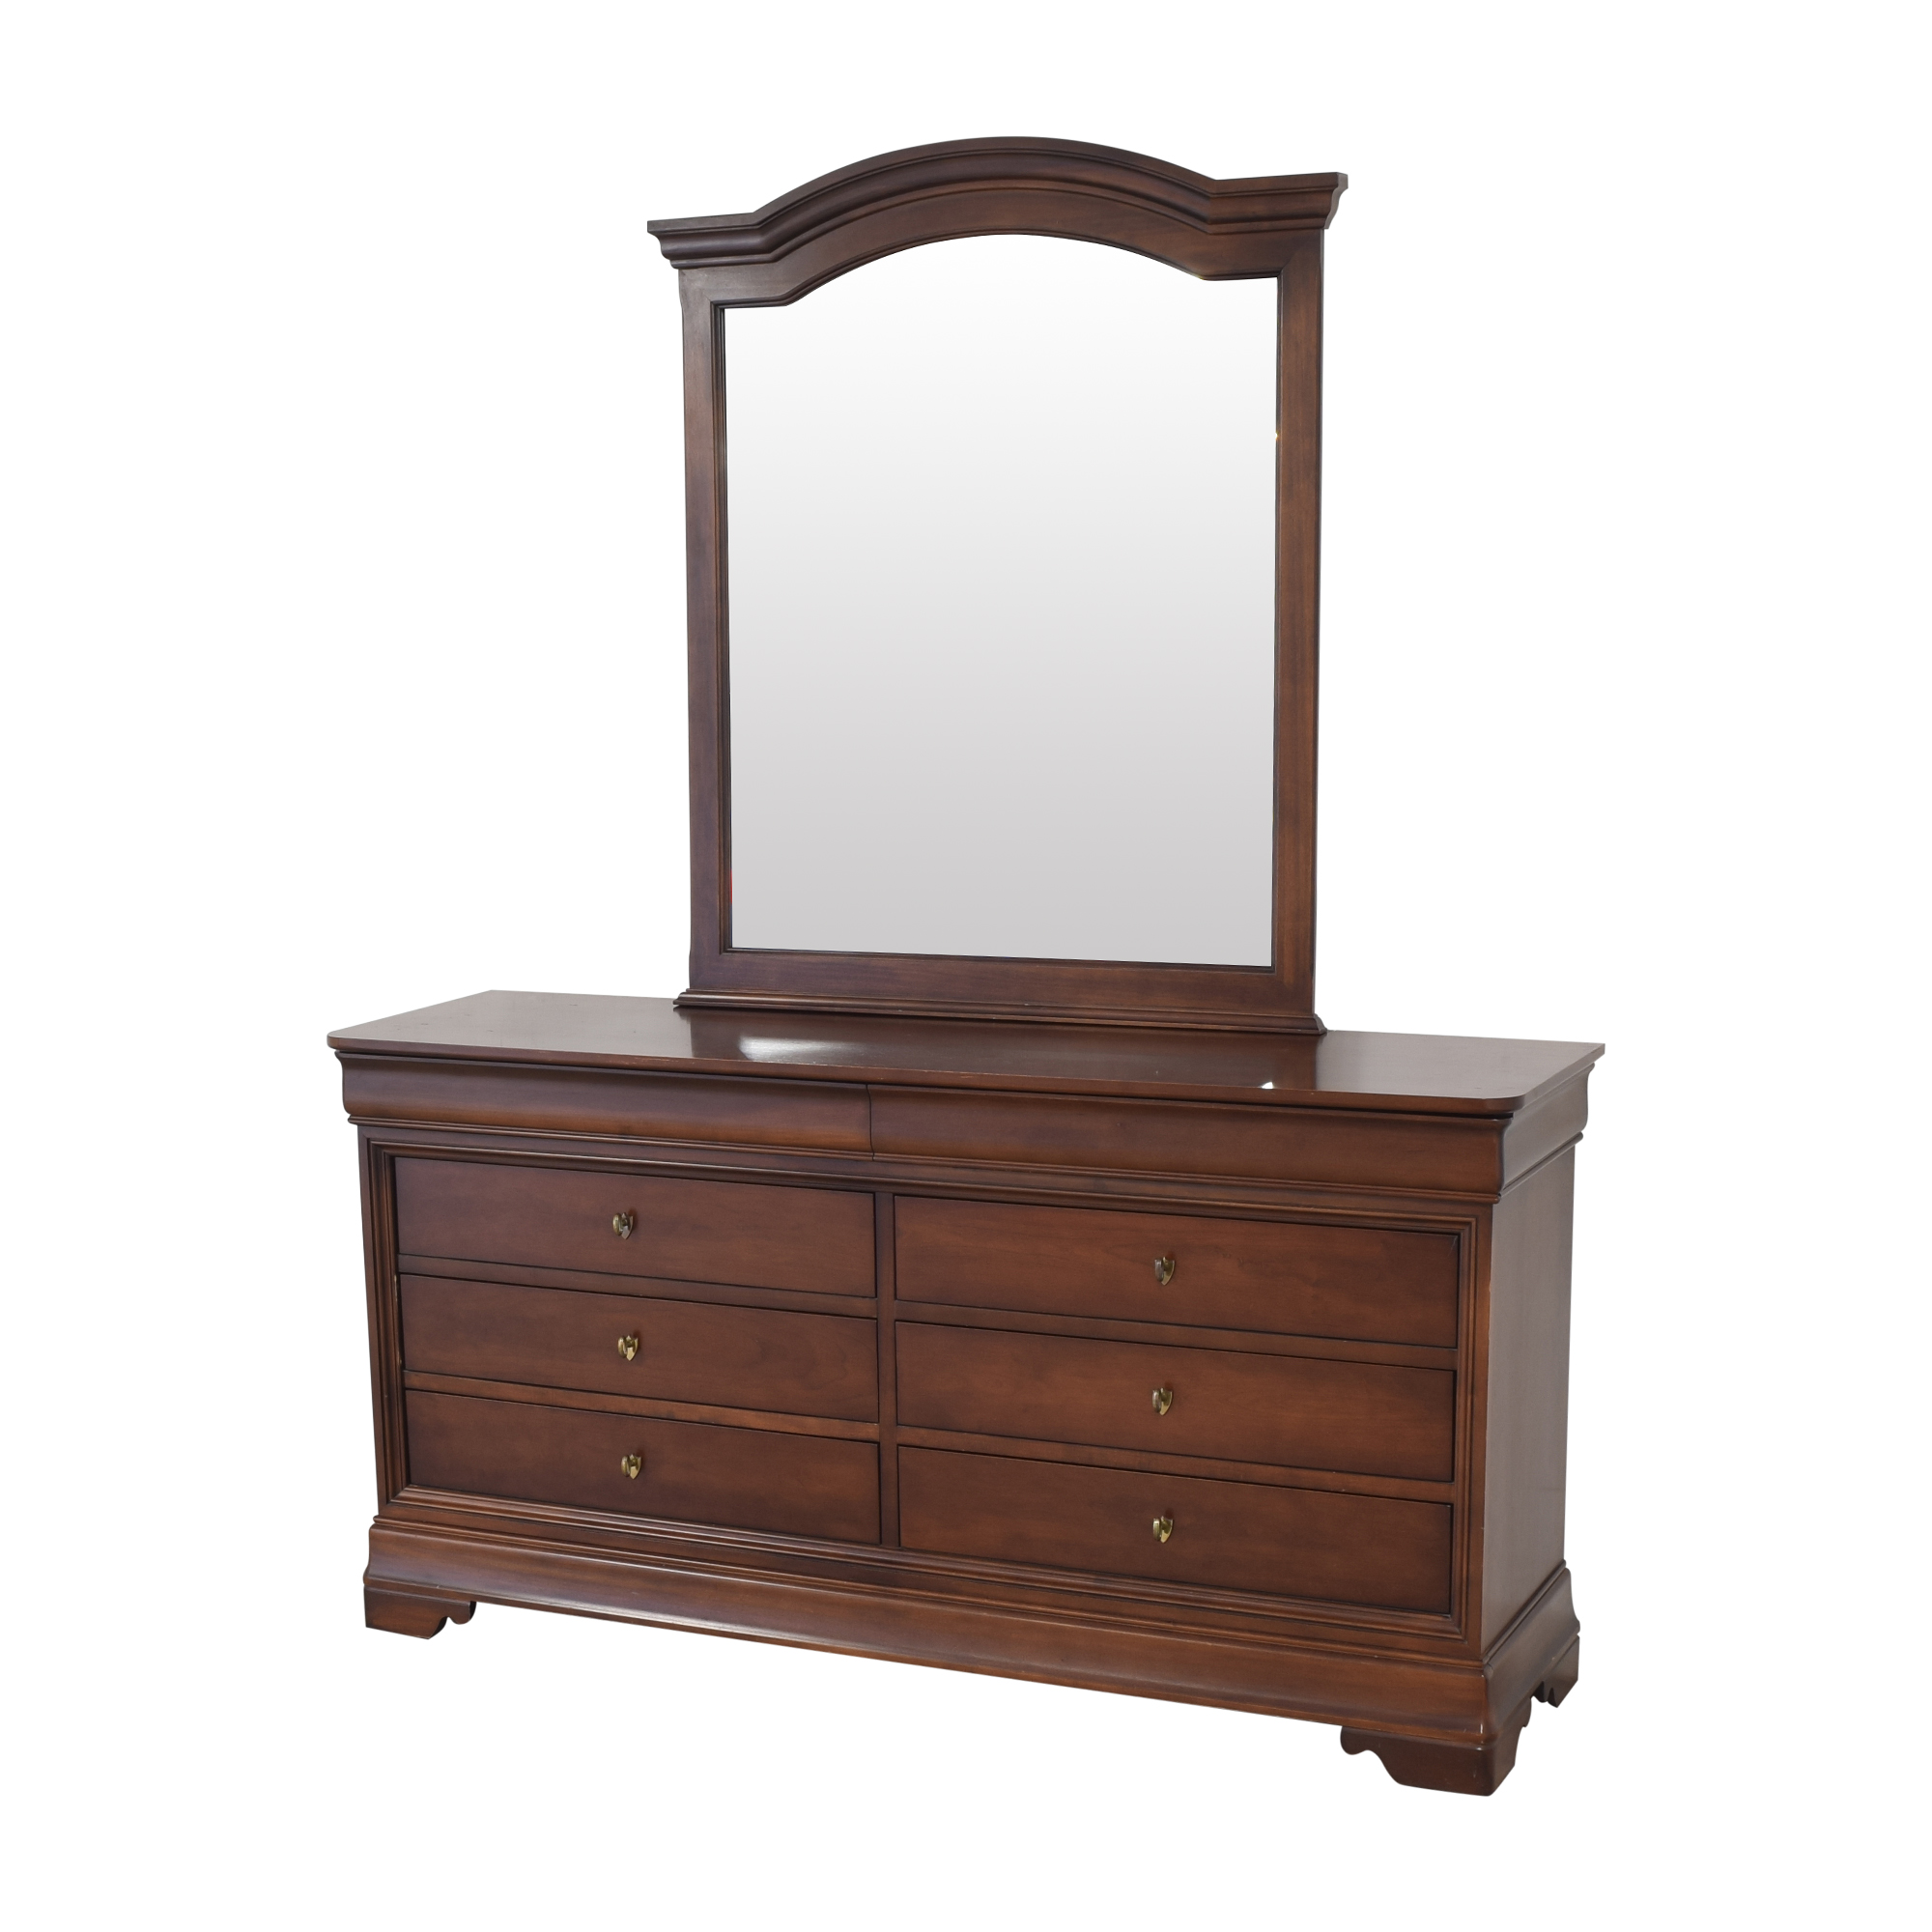 Kimball Double Dresser with Mirror / Dressers